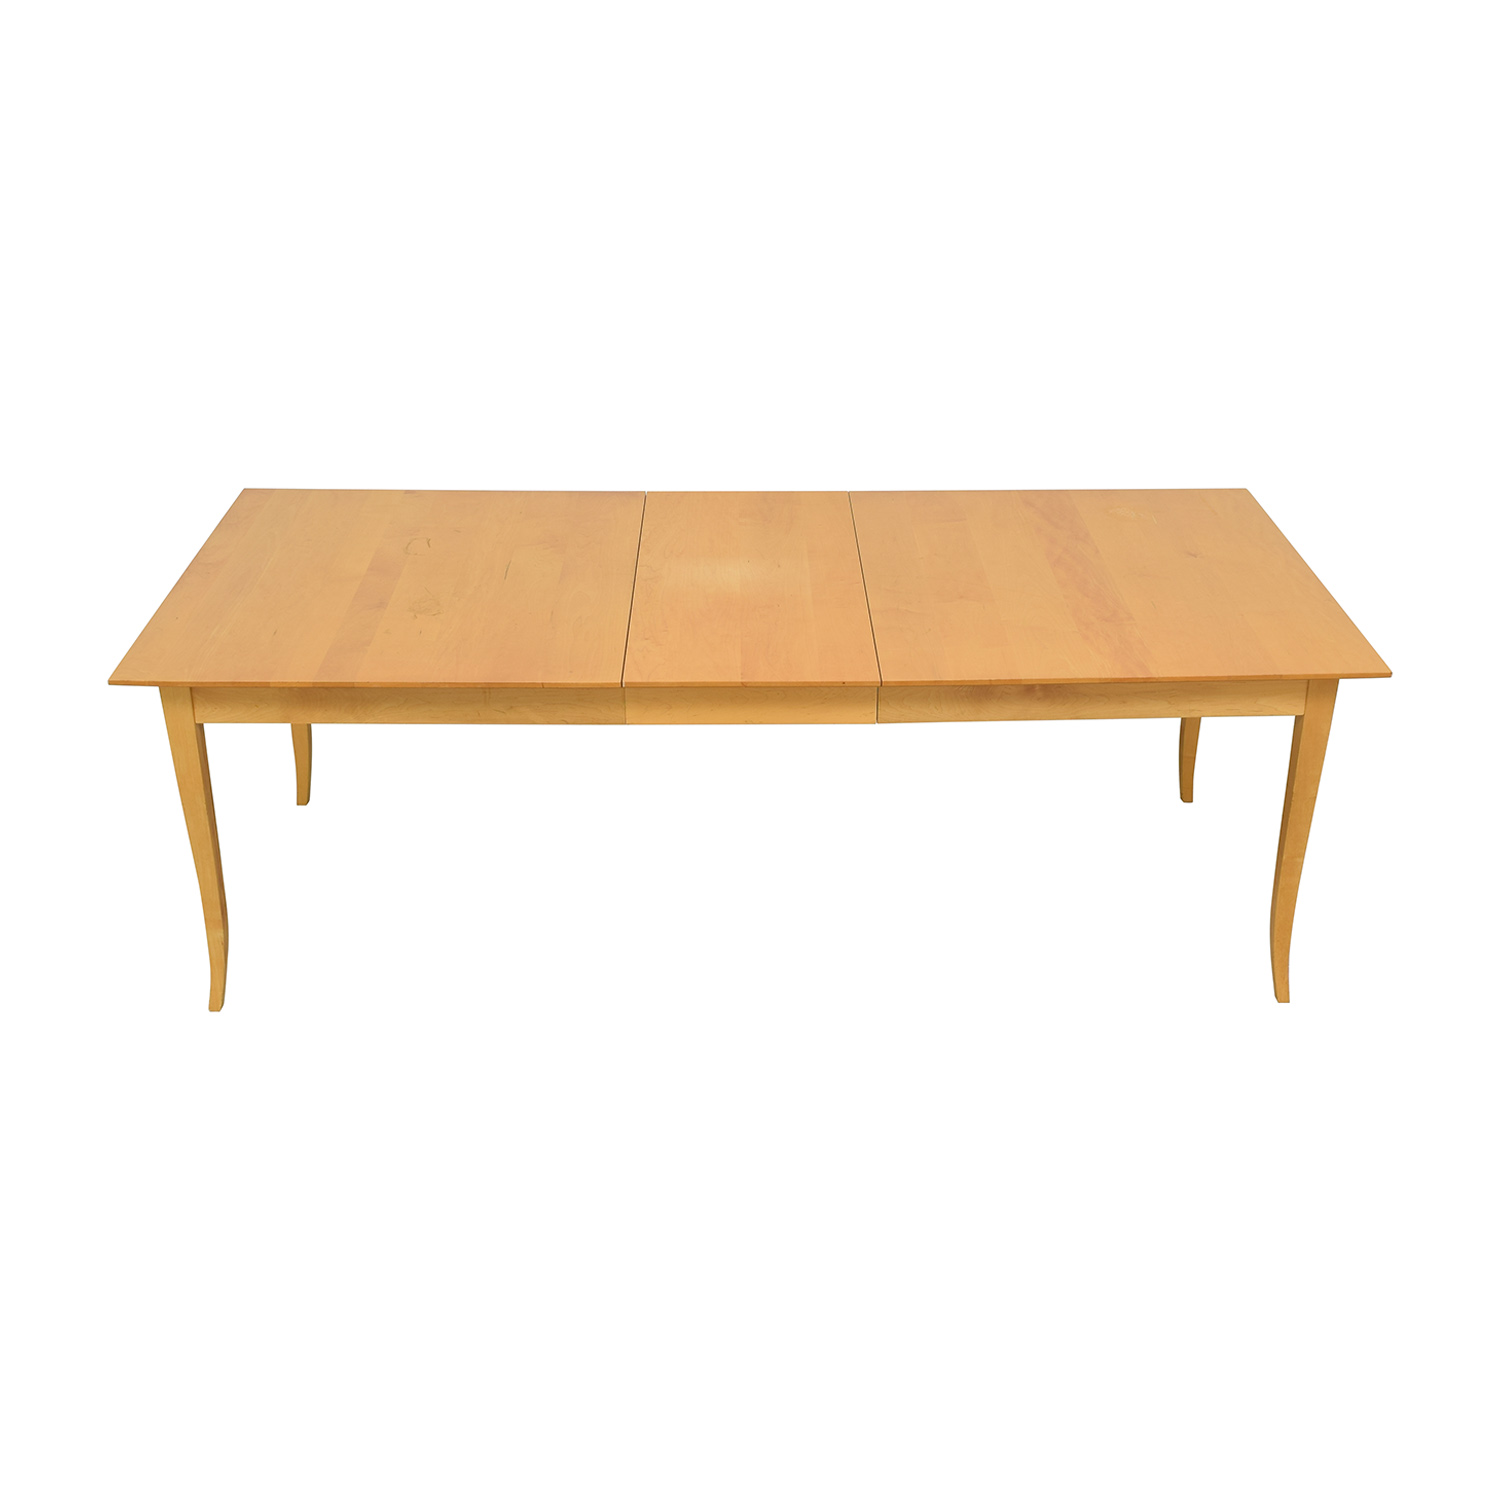 Room & Board Room & Board Extension Table for sale